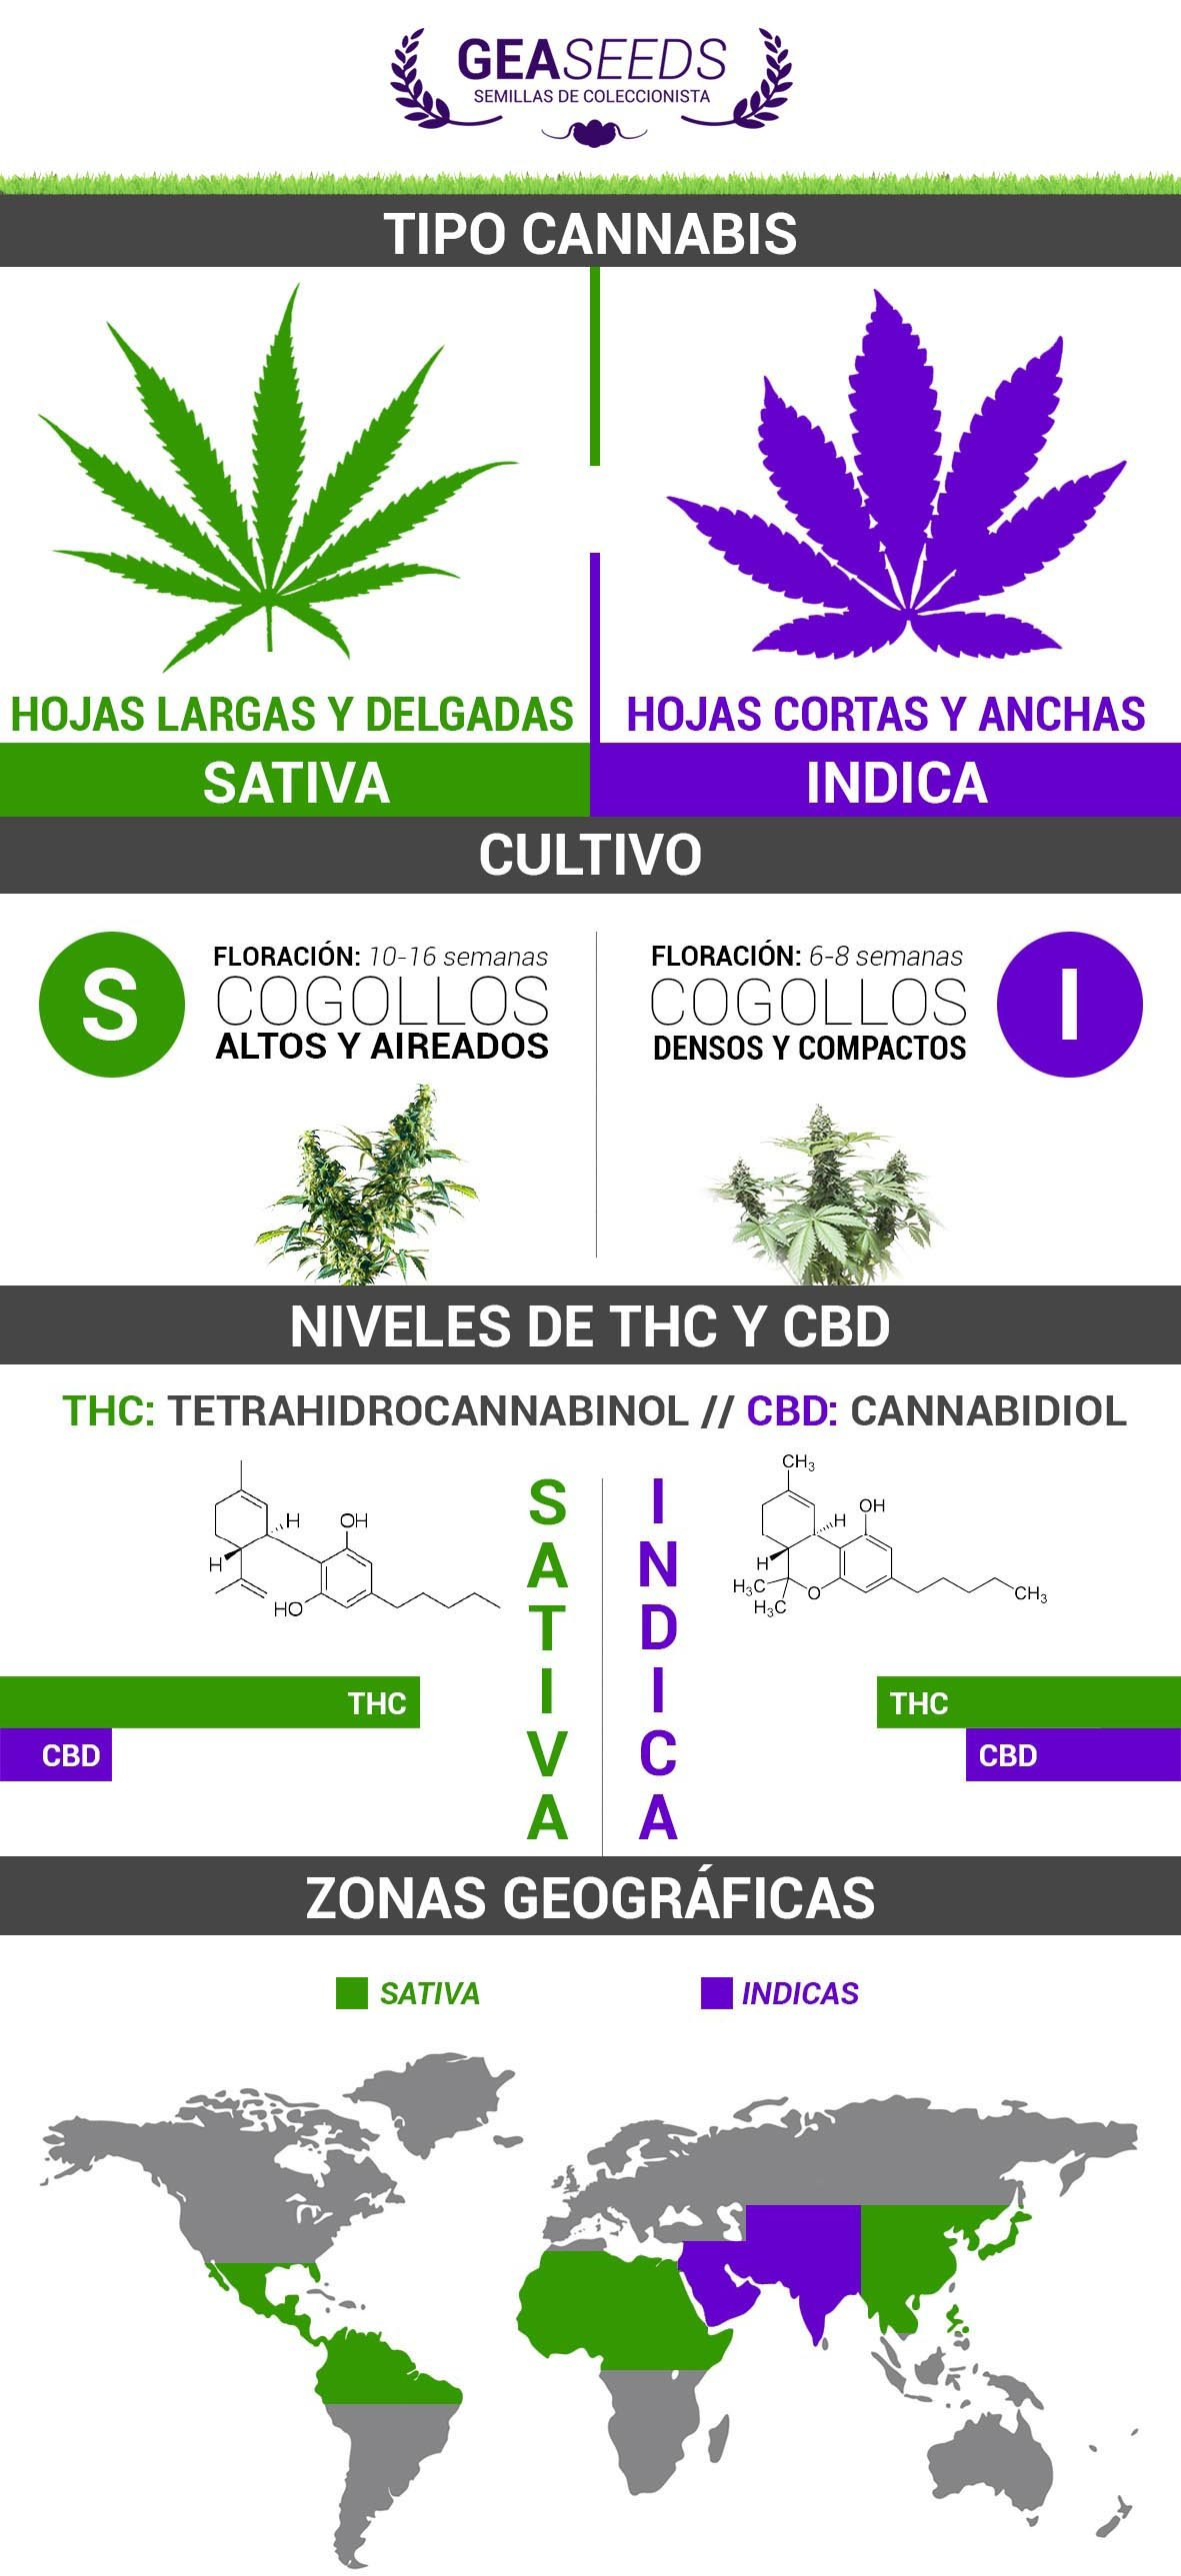 marihuanas sativas vs indicas